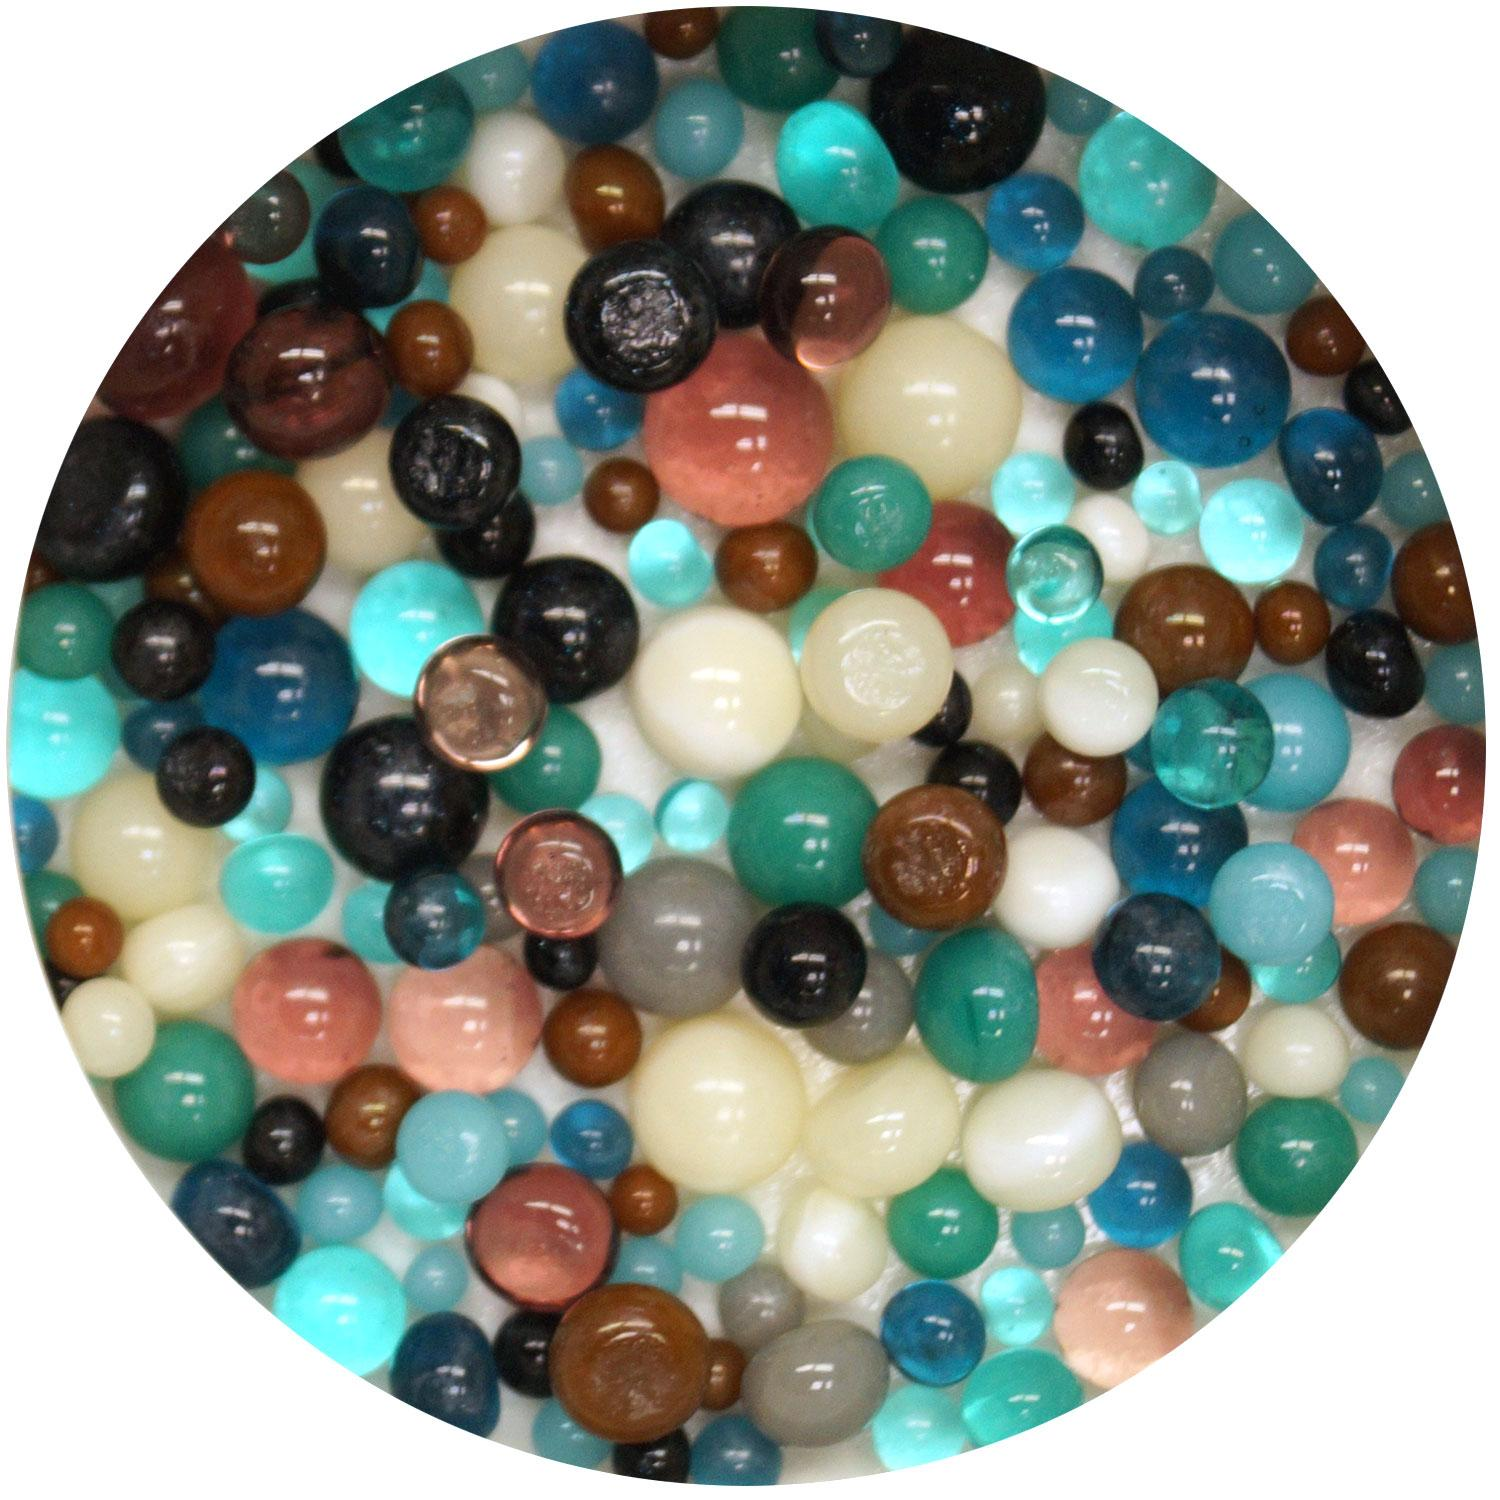 Seashore Frit Ball Assortment - 90 COE